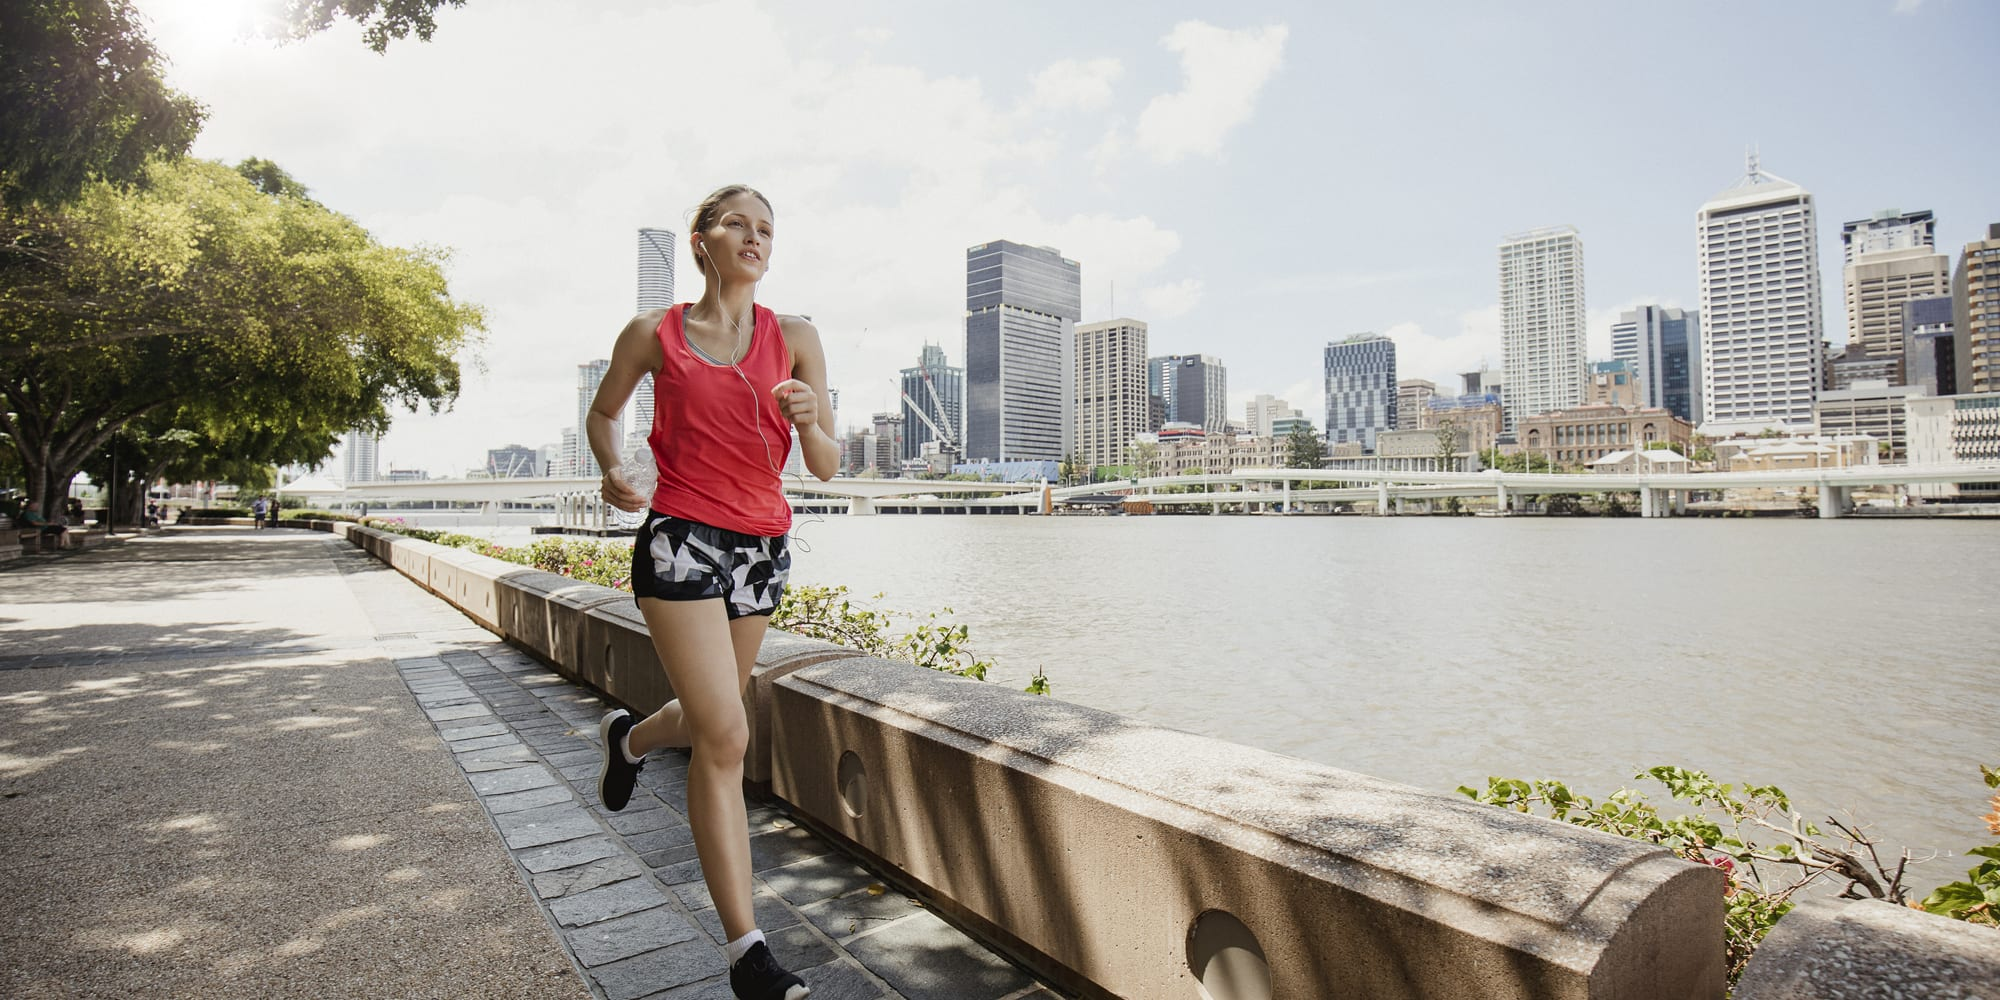 The 10 Best City Running Routes in the US